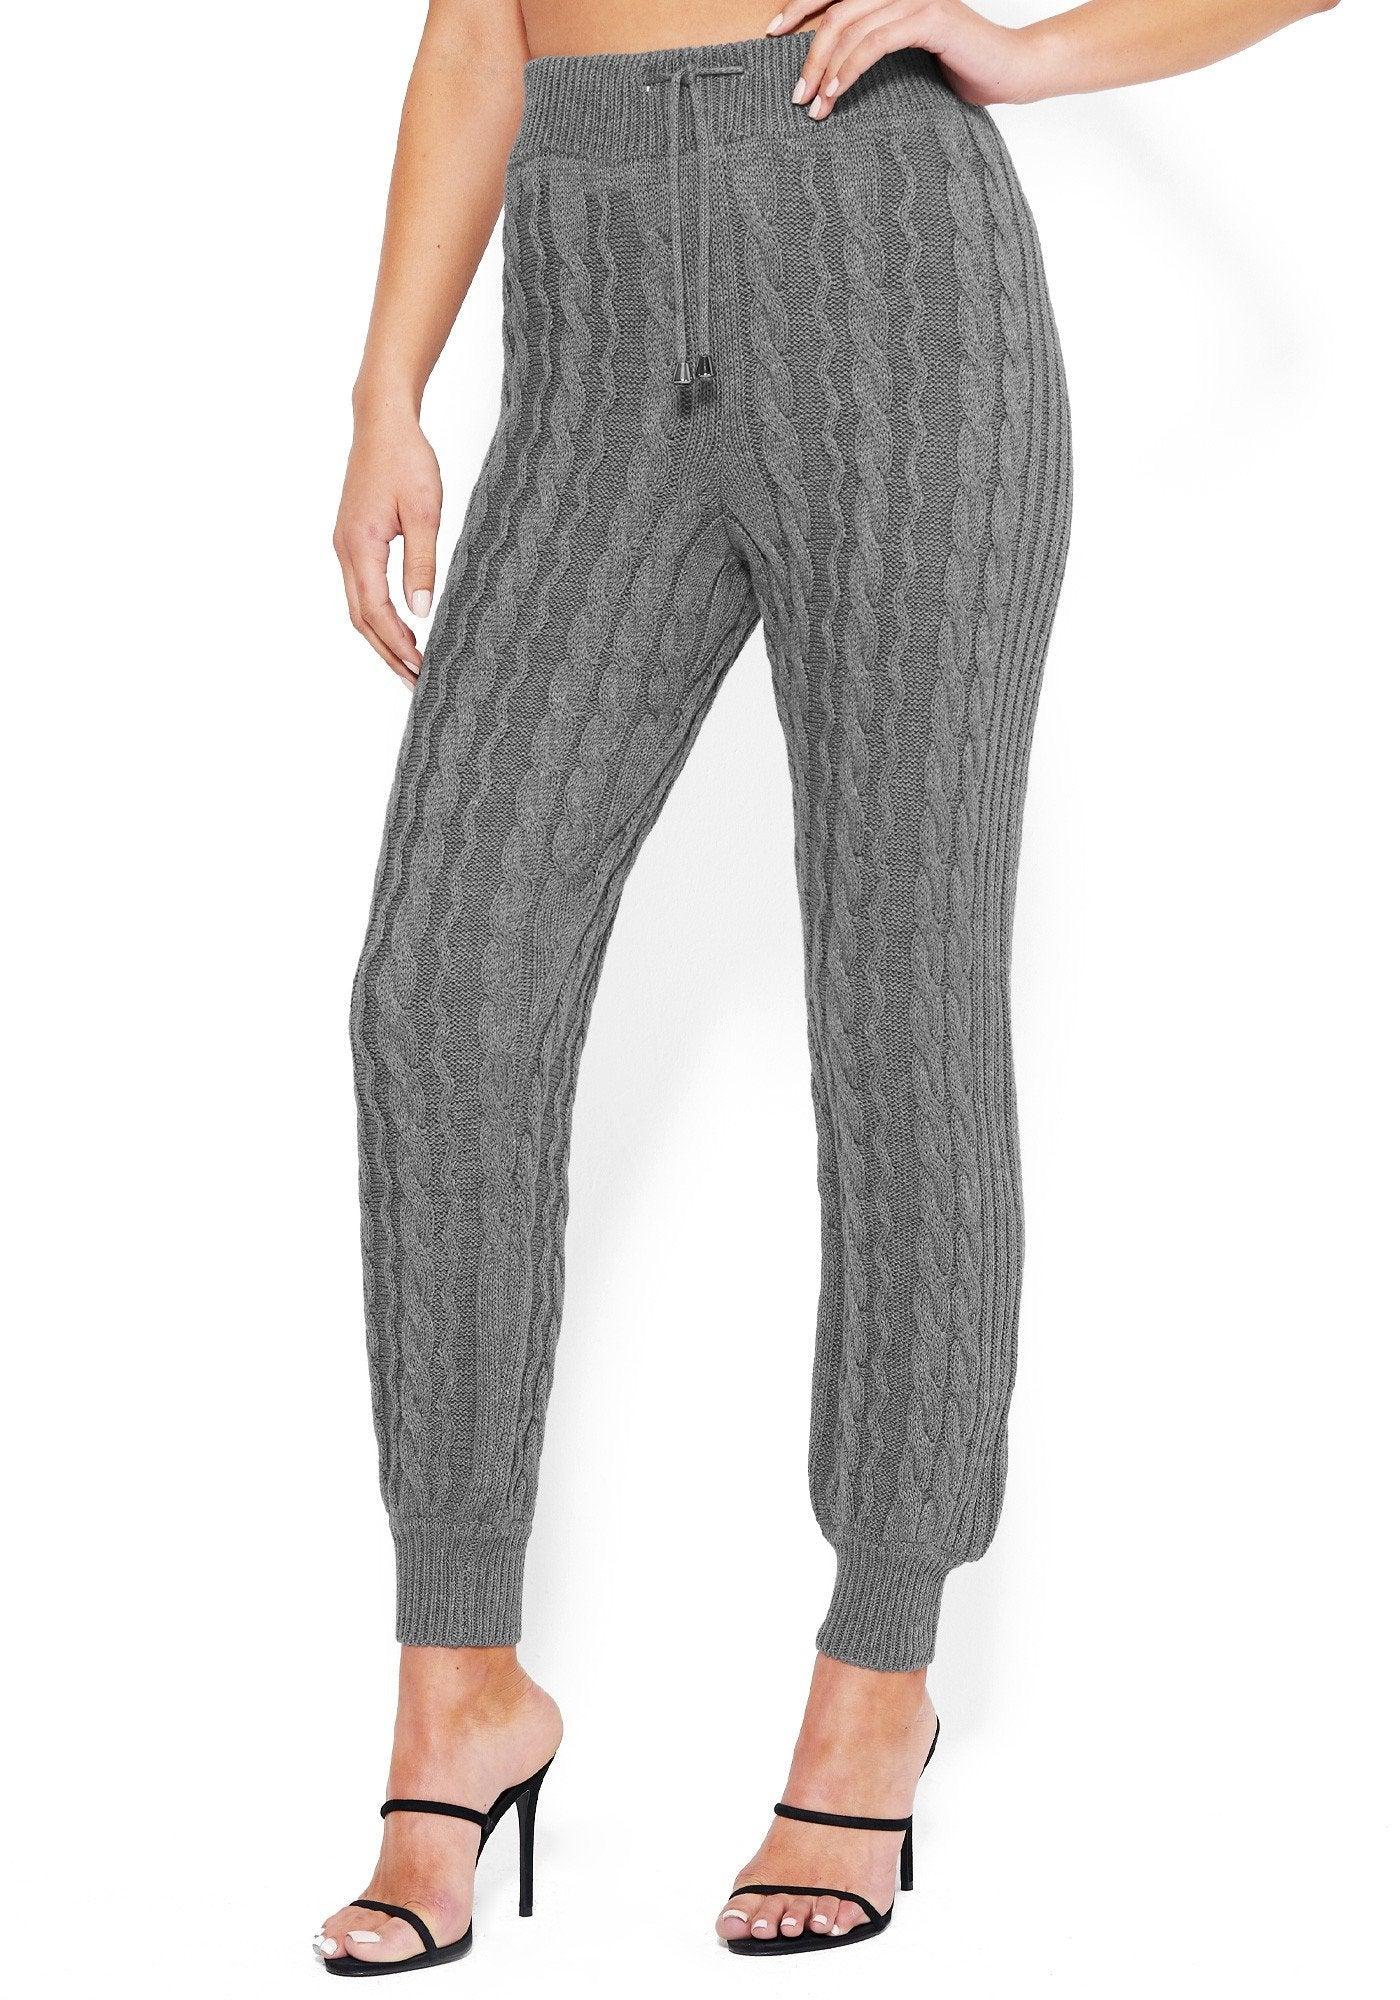 Bebe Women's Cable Knit Track Pant, Size XXS in Heather Grey Cotton